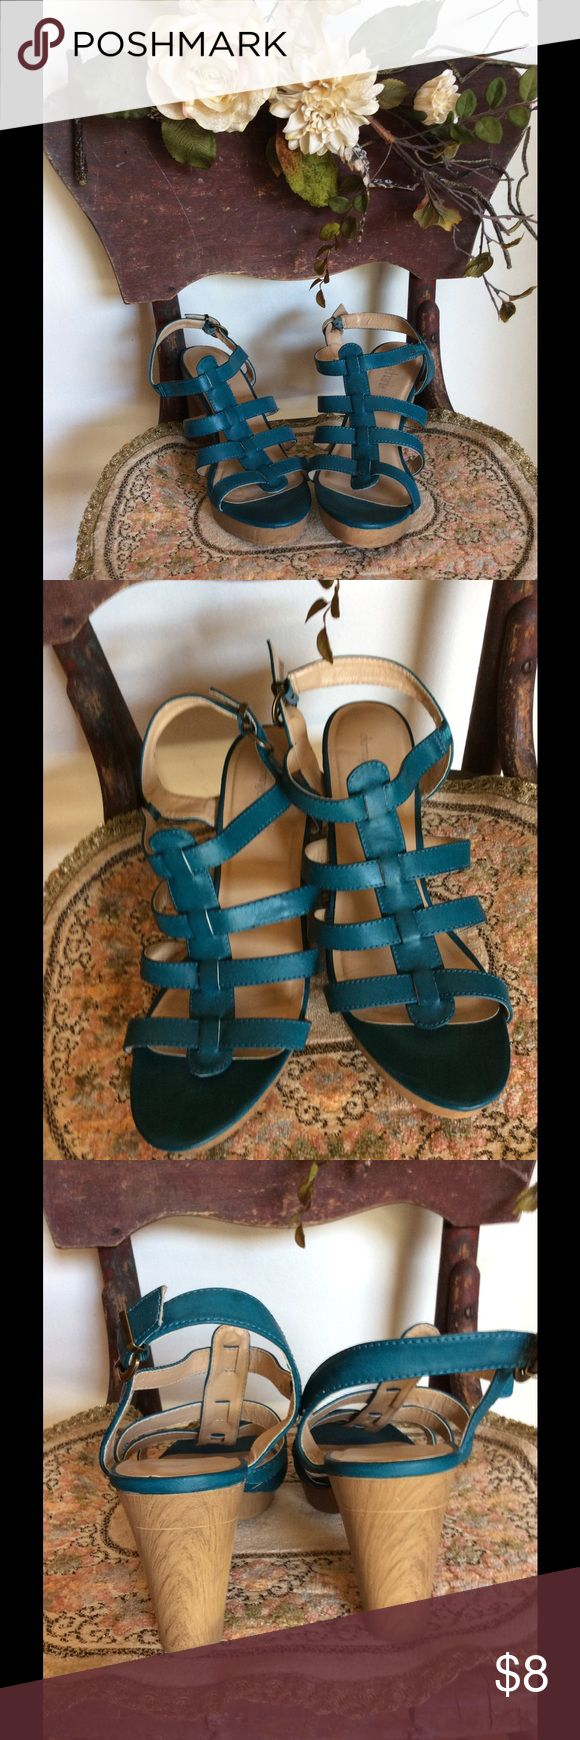 Teal Blue Strappy Heel Sandals🌿 Gently preloved in good condition.  Beautiful color. Man made materials.  2 1/2 inch heel. Gold colored buckles at ankle strap. Charming Charlie Shoes Sandals